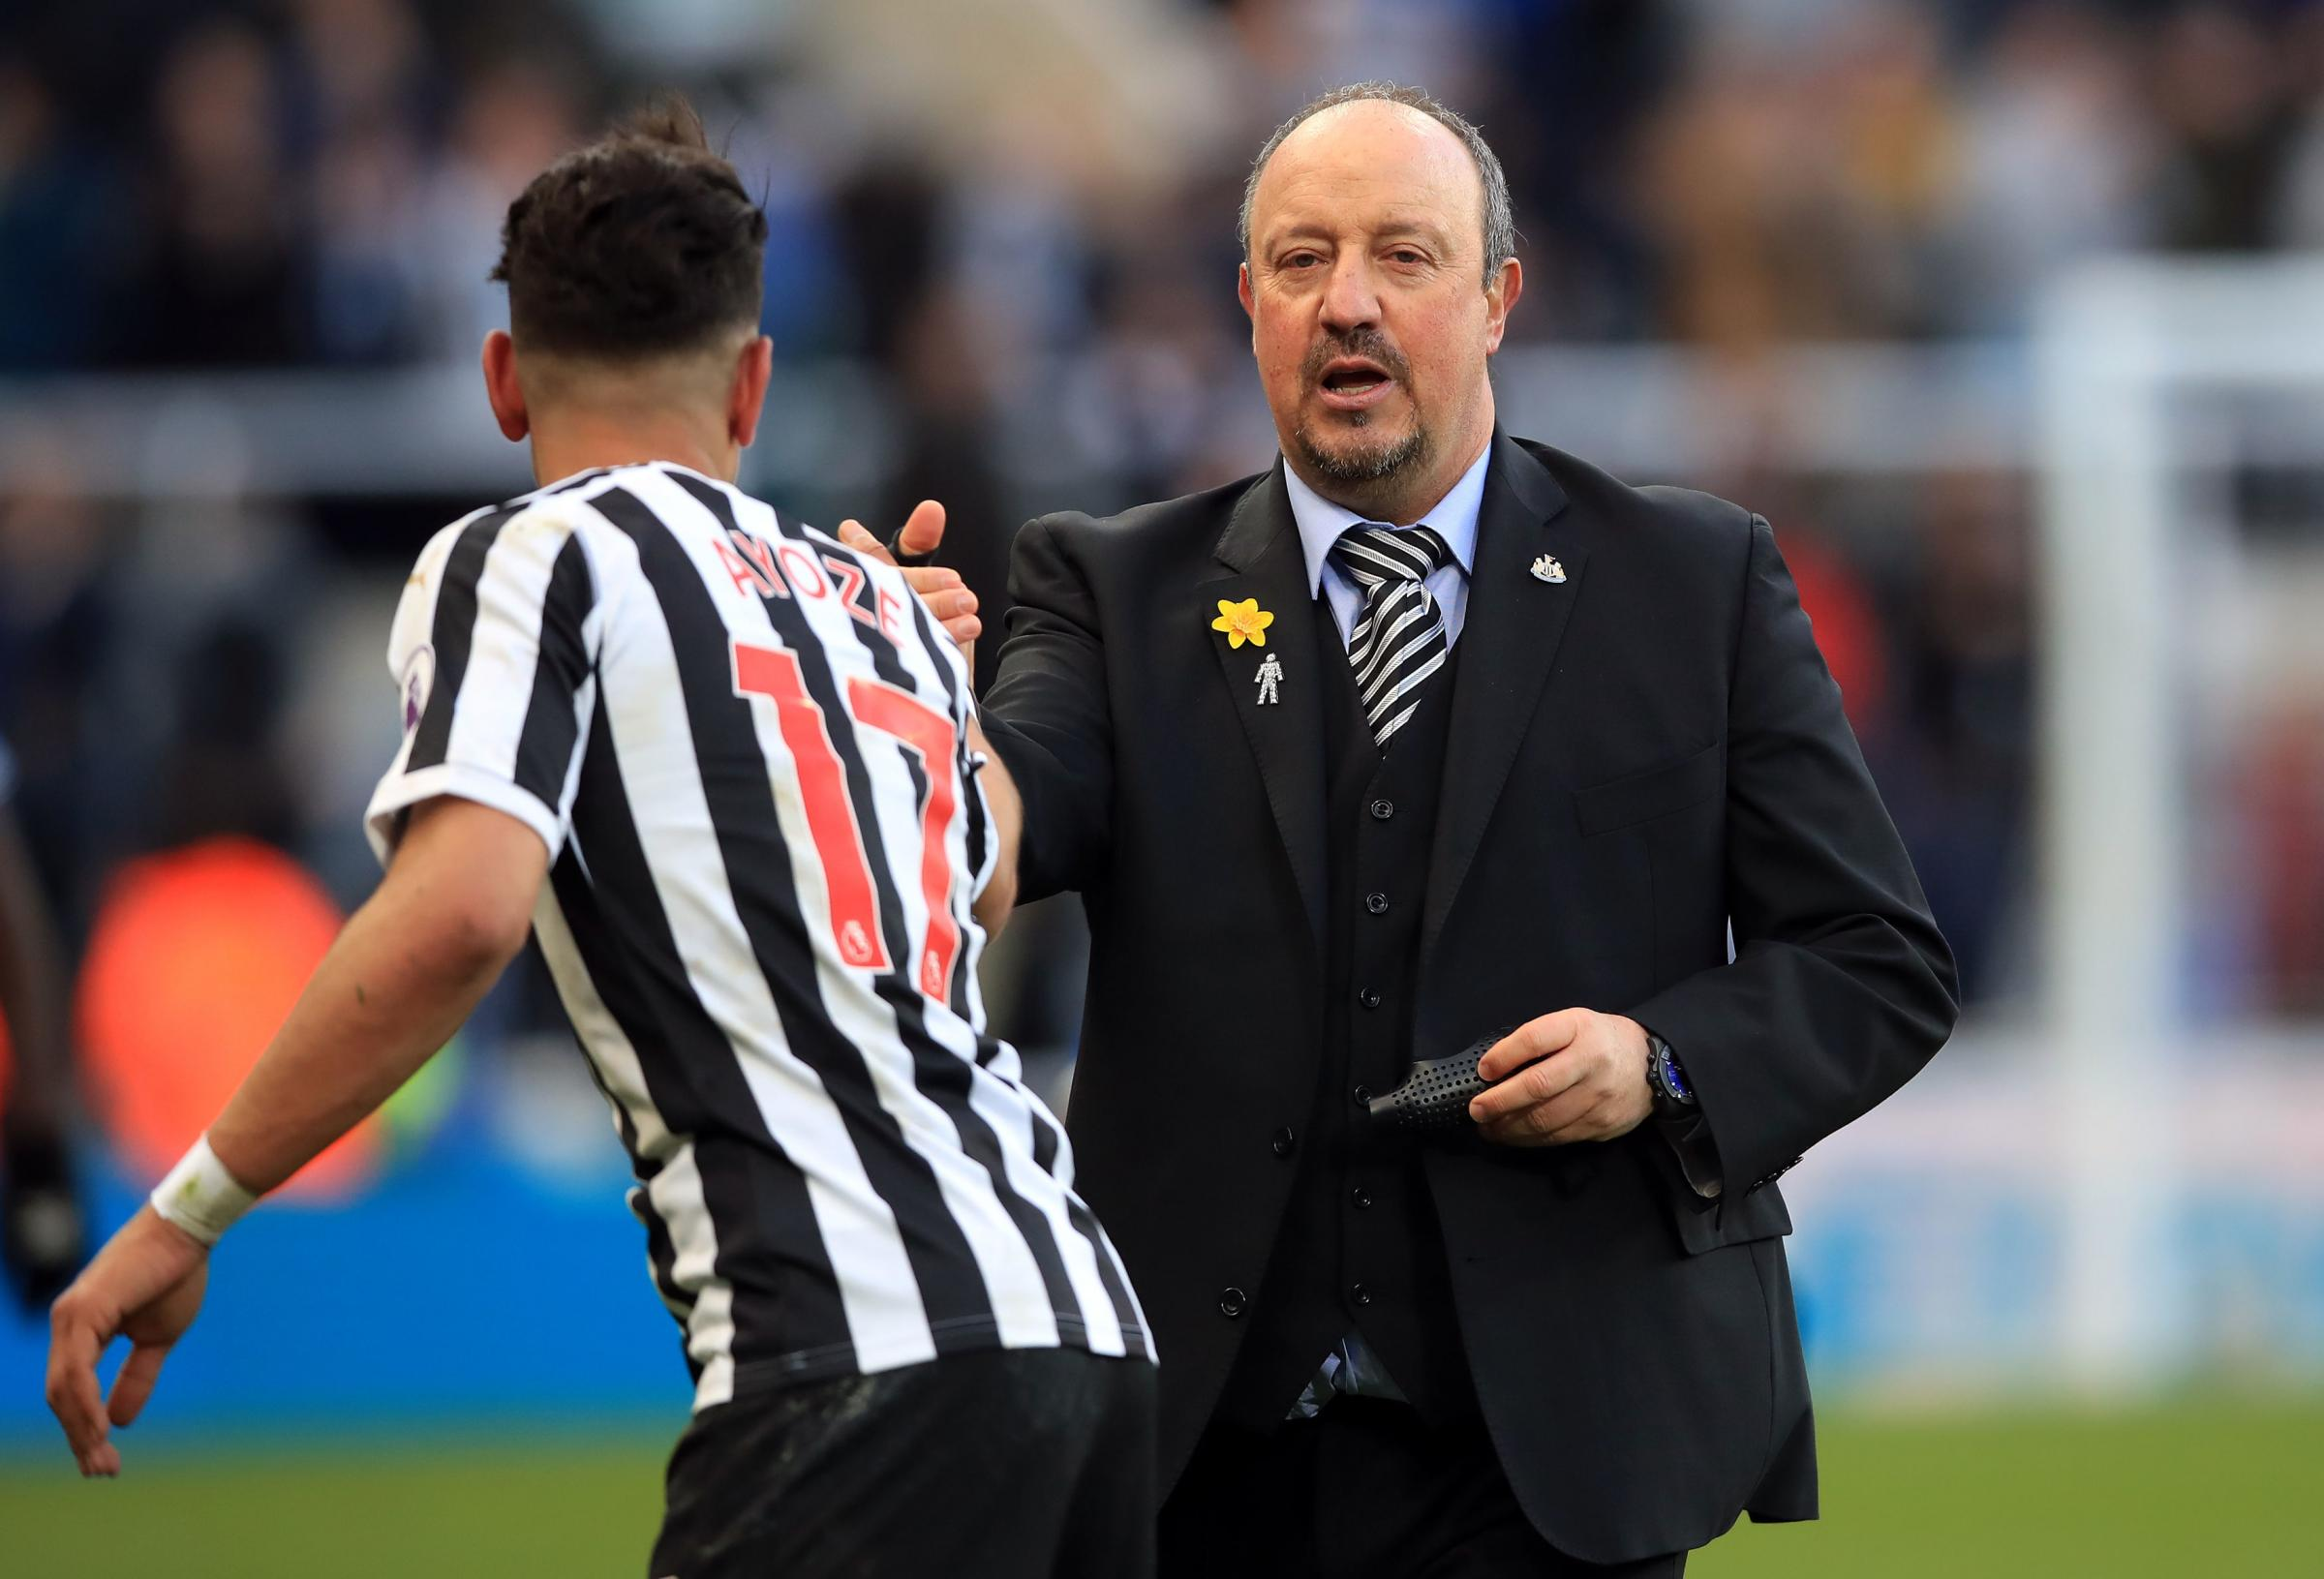 Newcastle United's Ayoze Perez and manager Rafael Benitez after the Premier League match at St James' Park, Newcastle. PRESS ASSOCIATION Photo. Picture date: Saturday March 9, 2019. See PA story SOCCER Newcastle. Photo credit should read: Owen Hu